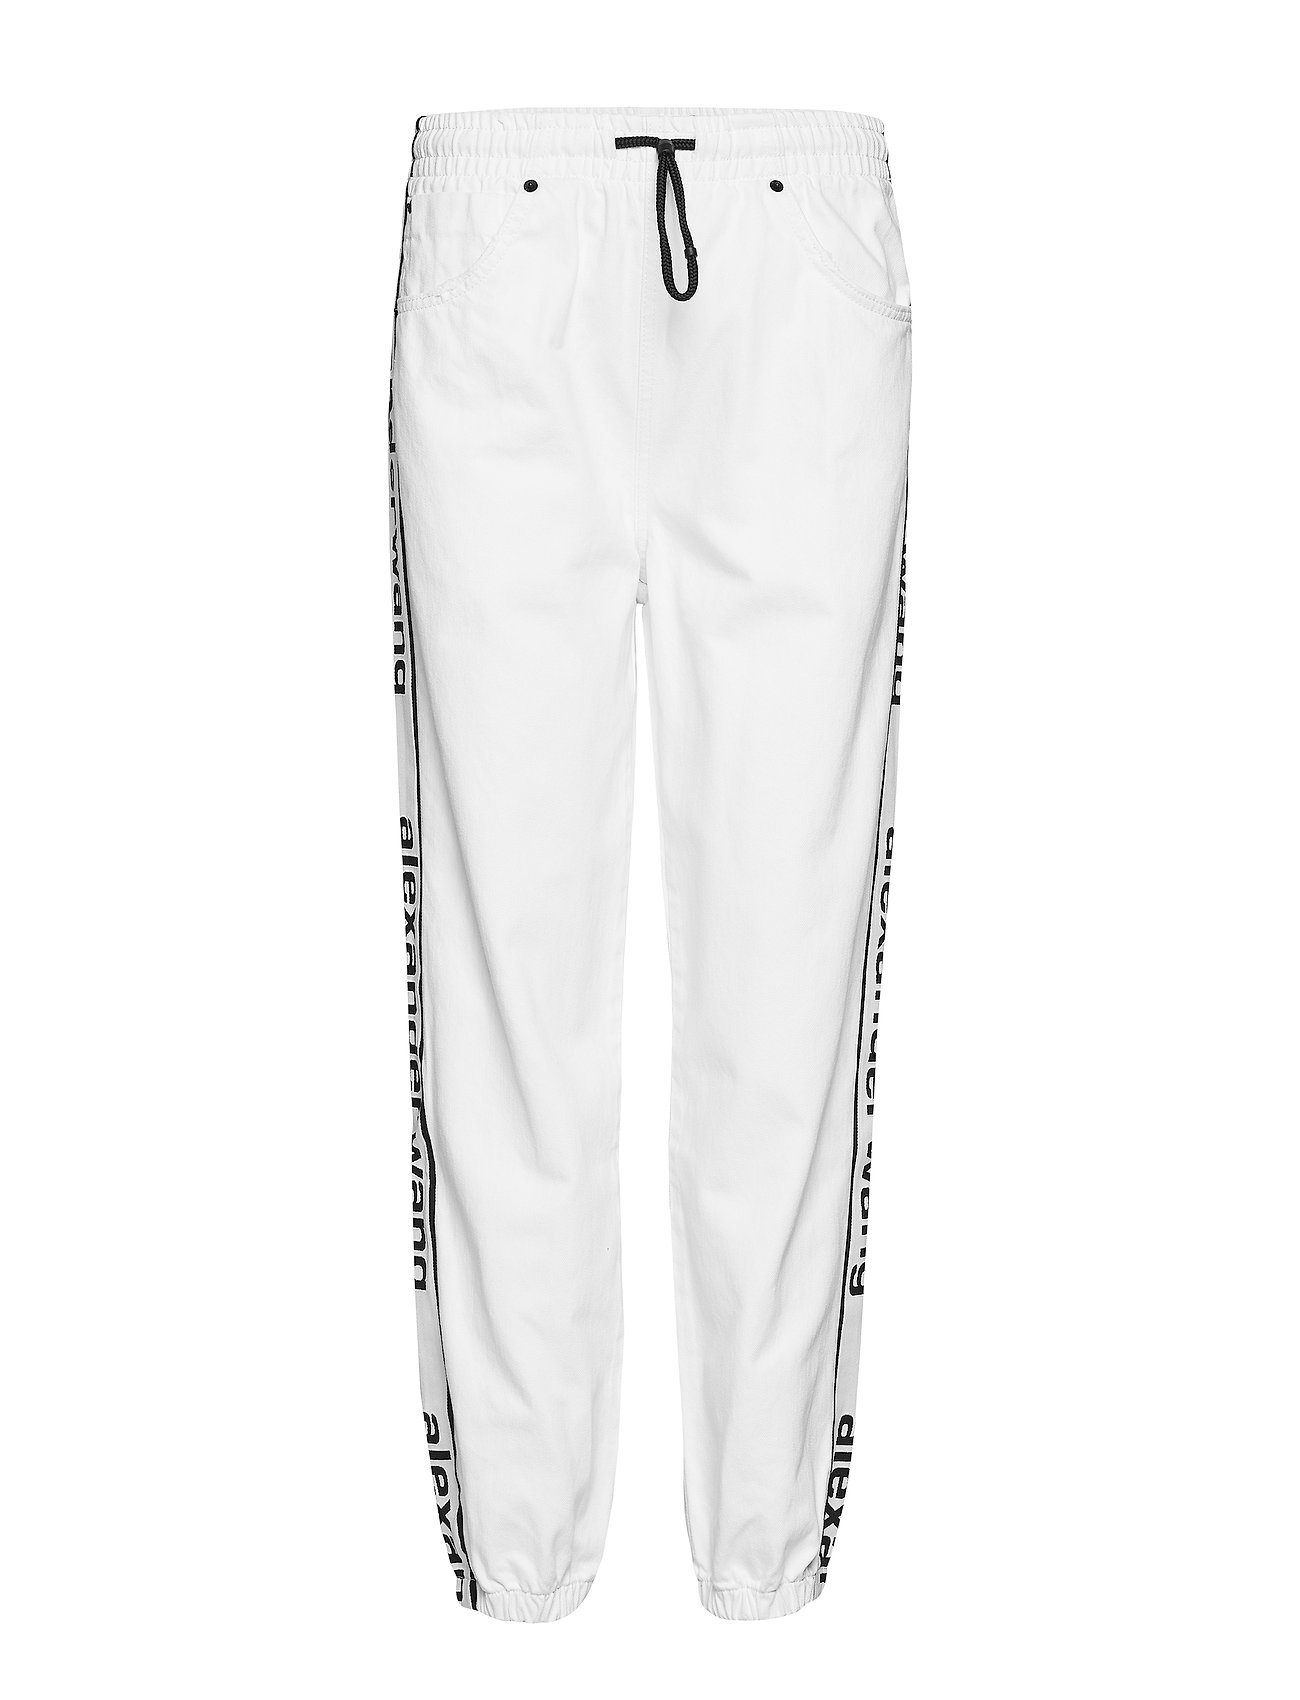 Image of Track Pant - Optic White Casual Bukser Hvid T By Alexander Wang (3113798273)